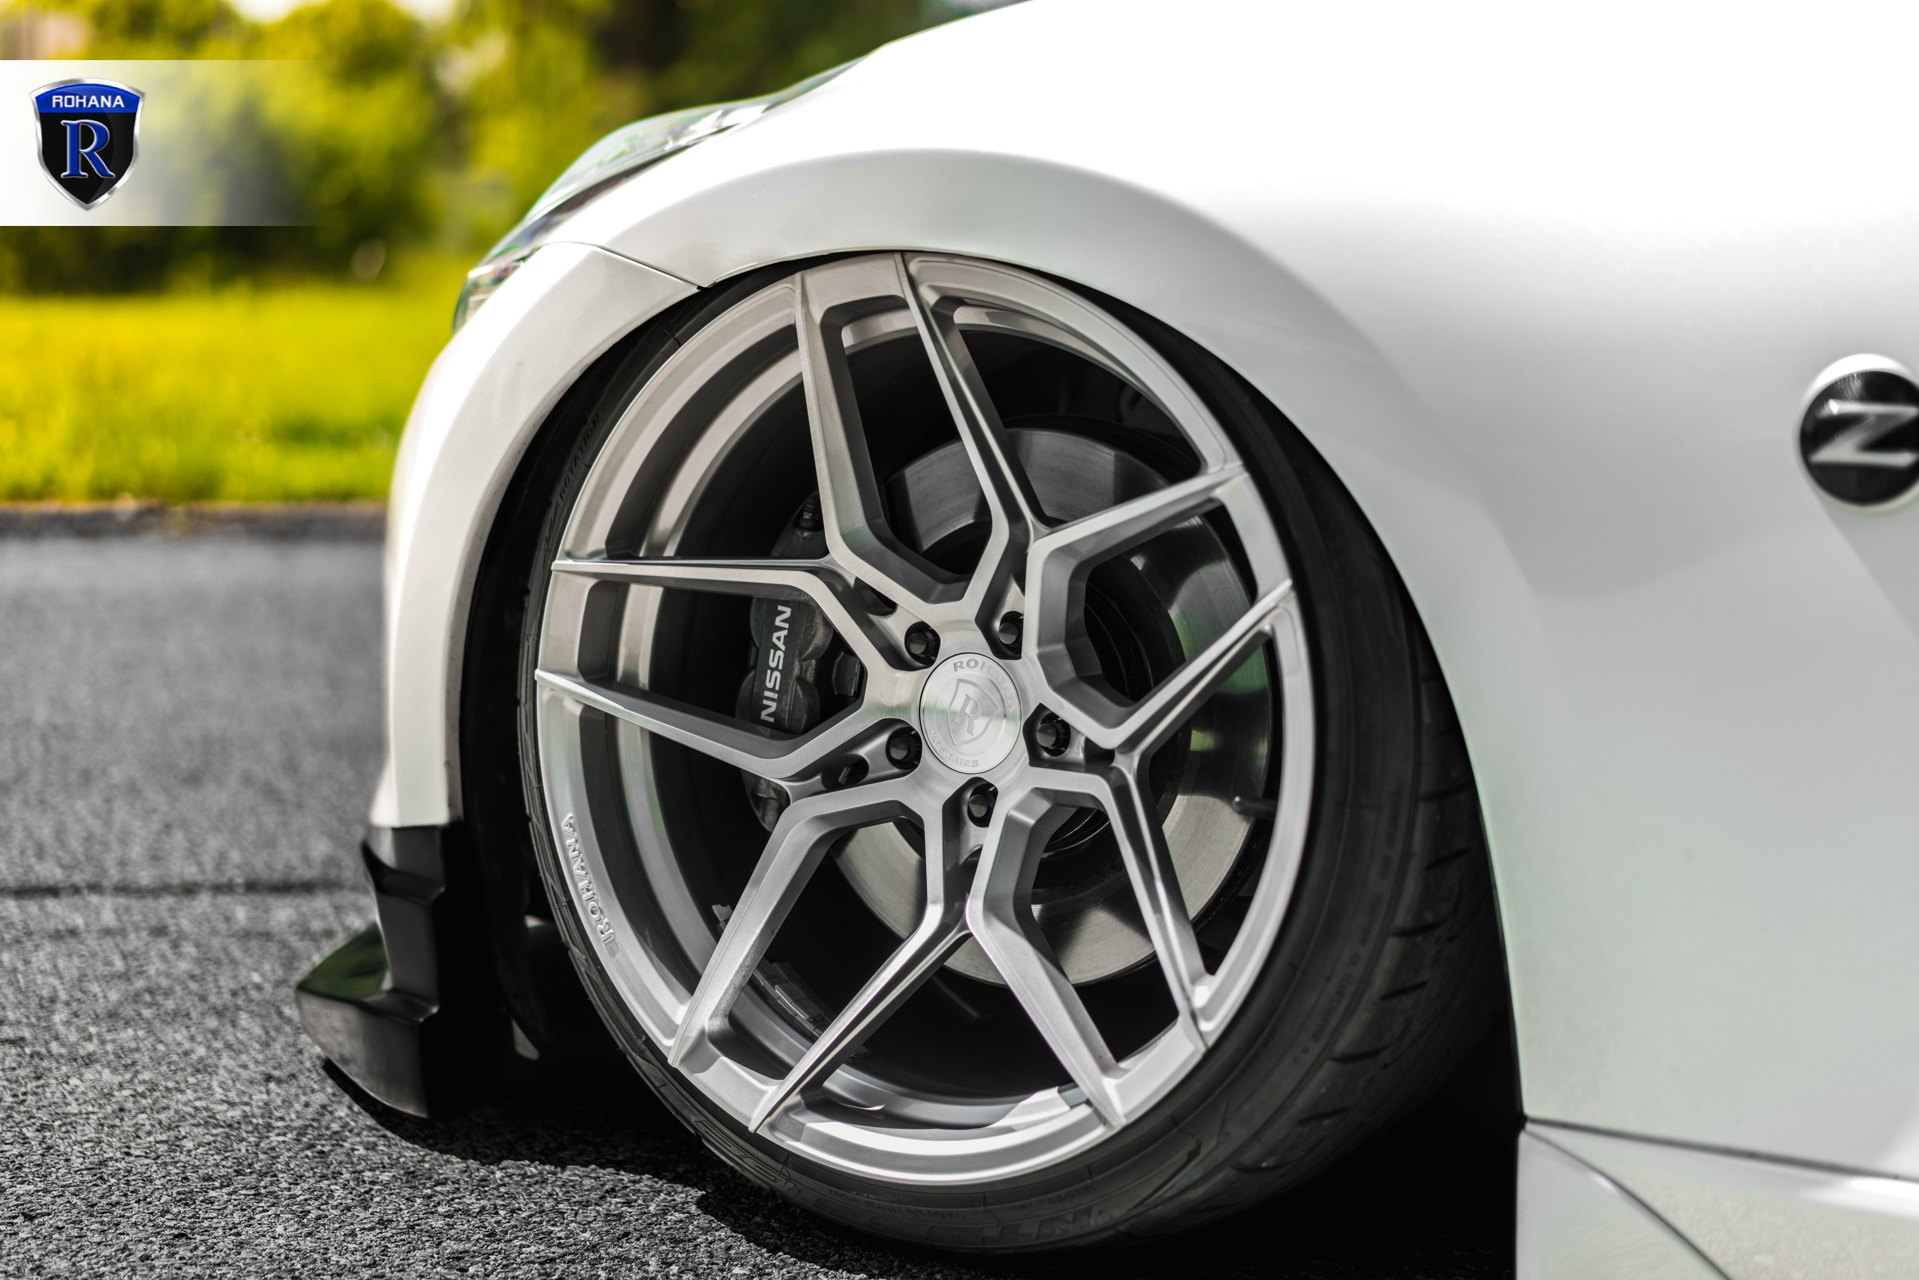 Chrome Rohana Wheels on White Nissan 370Z - Photo by Rohana Wheels